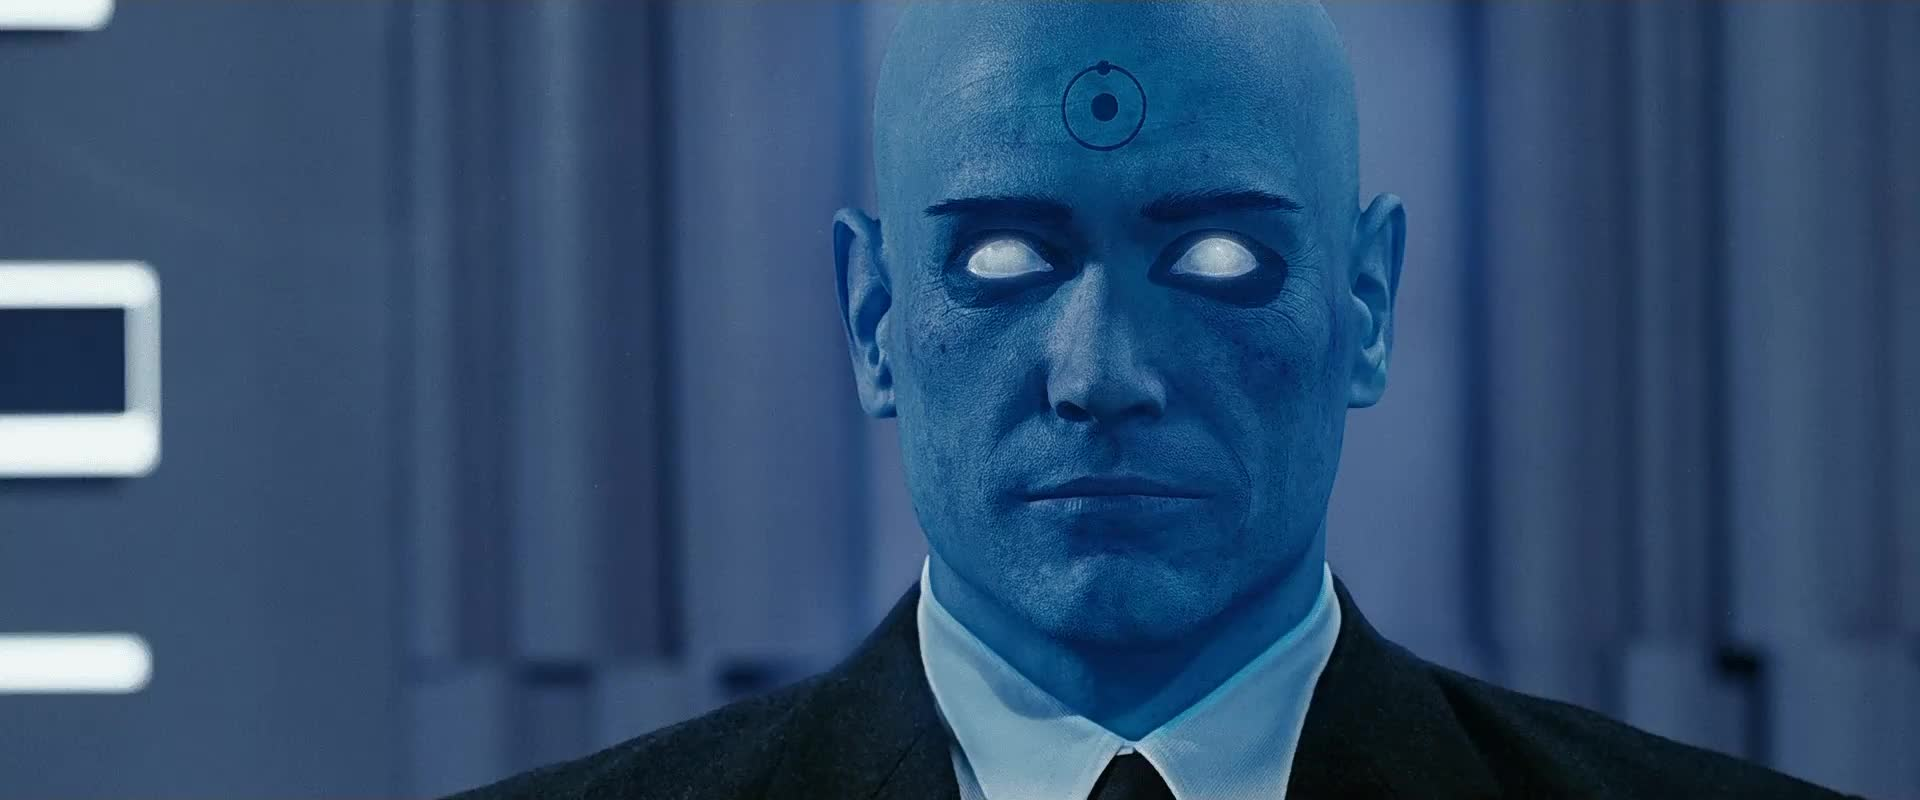 watchmen, He was a good man GIFs